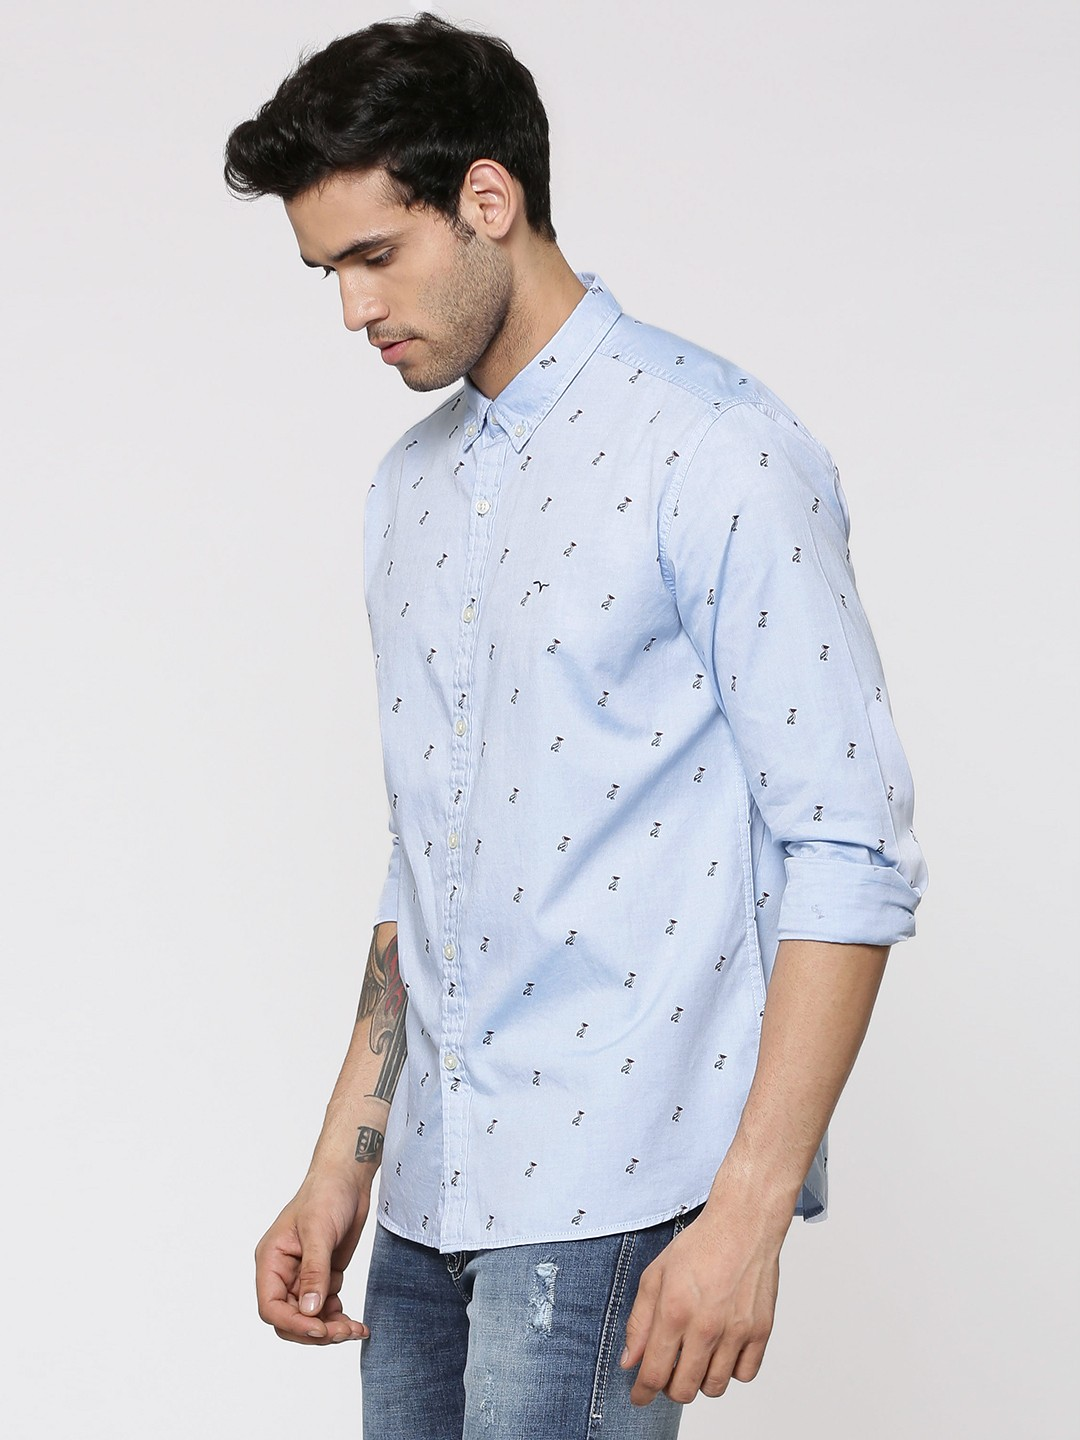 Mens Long Sleeve Summer Shirts